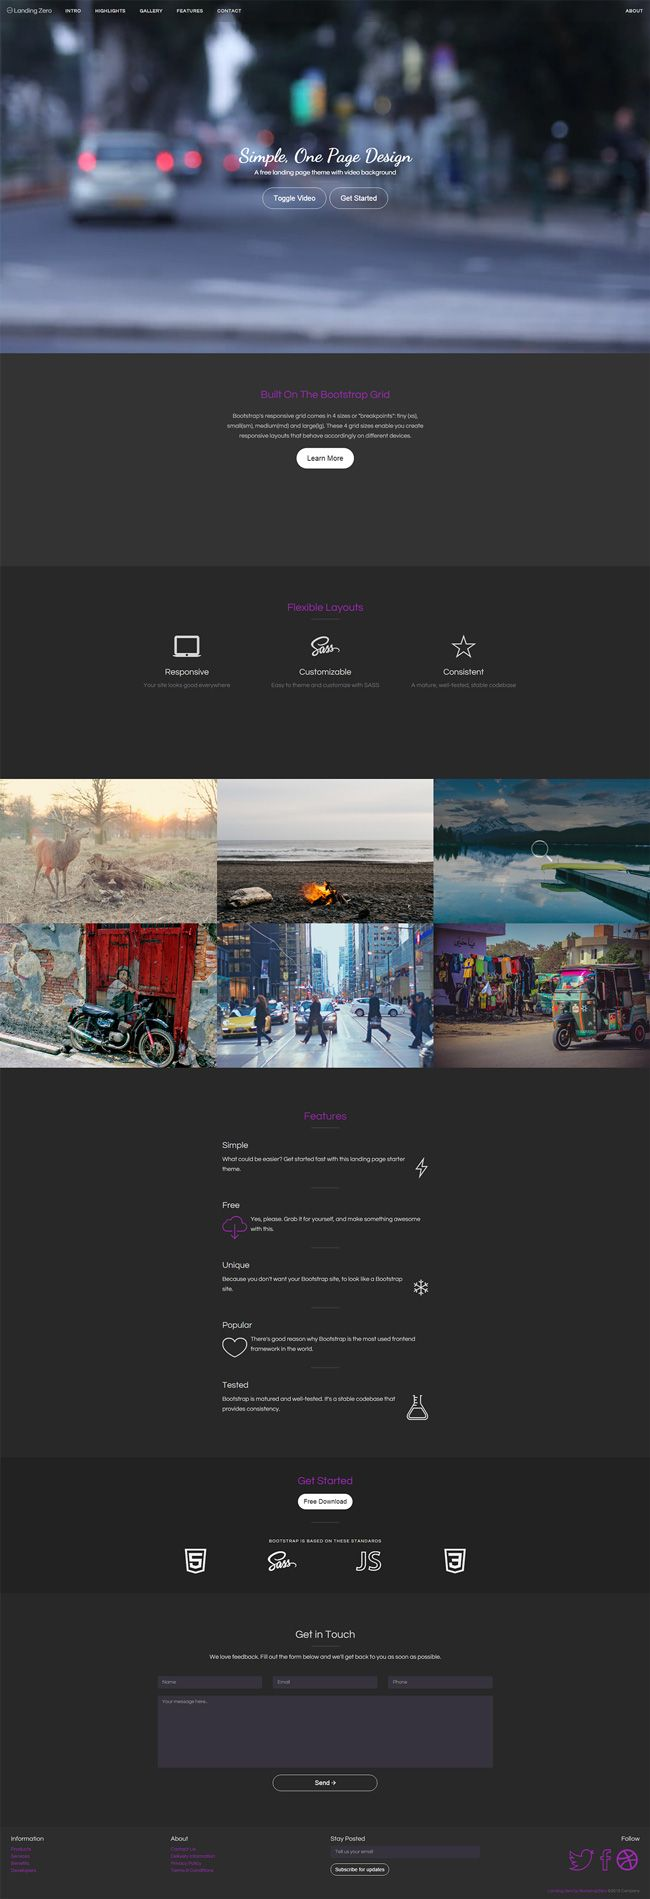 Landing Zero: Free Bootstrap Theme for Your Website